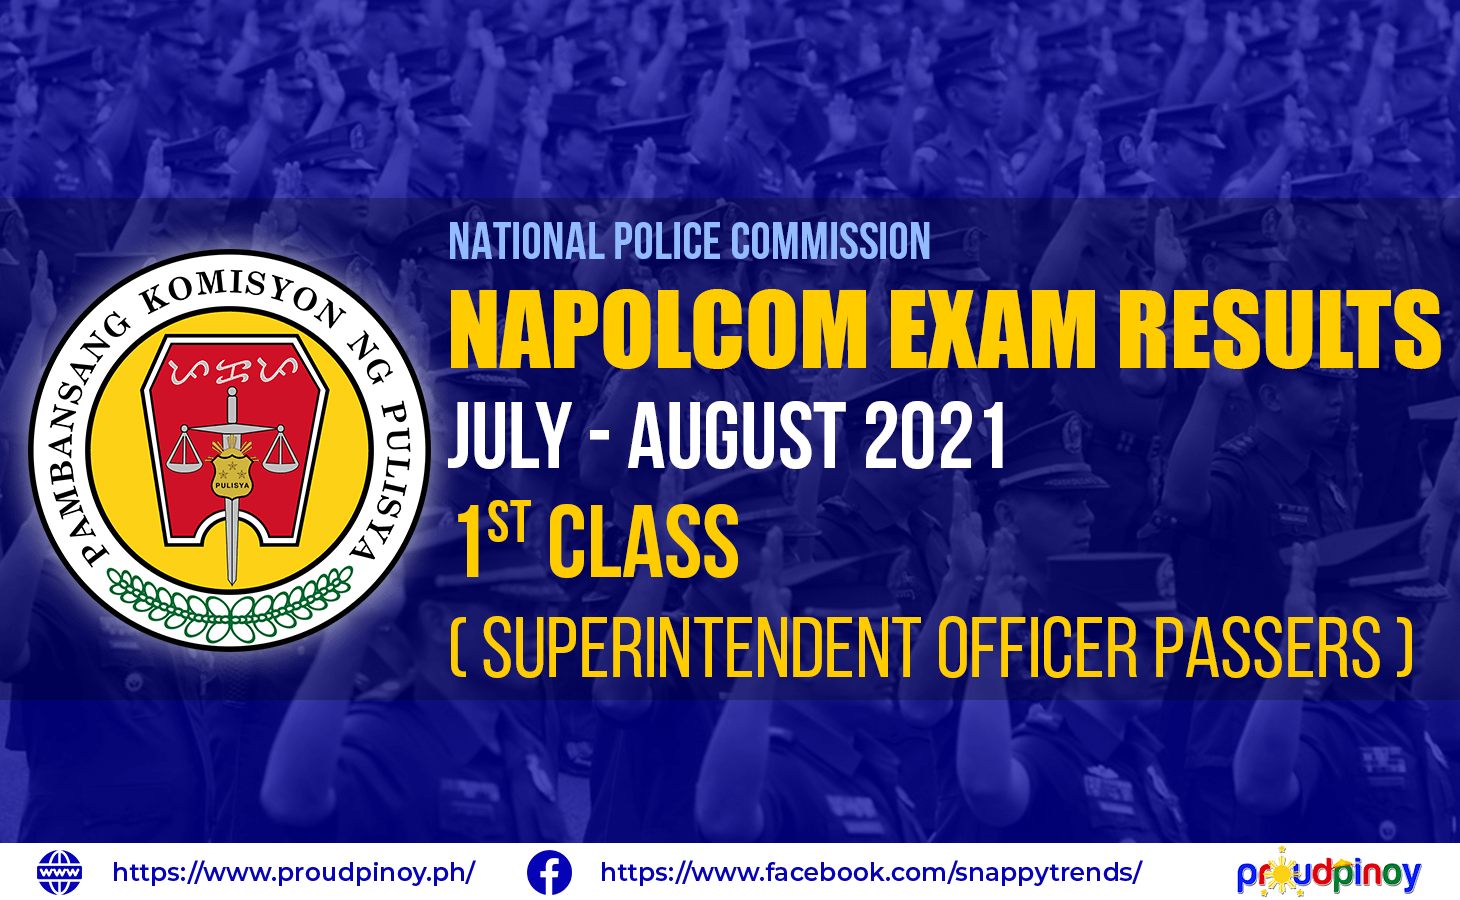 NAPOLCOM Exam Results July-August 2021, Superintendent Passers